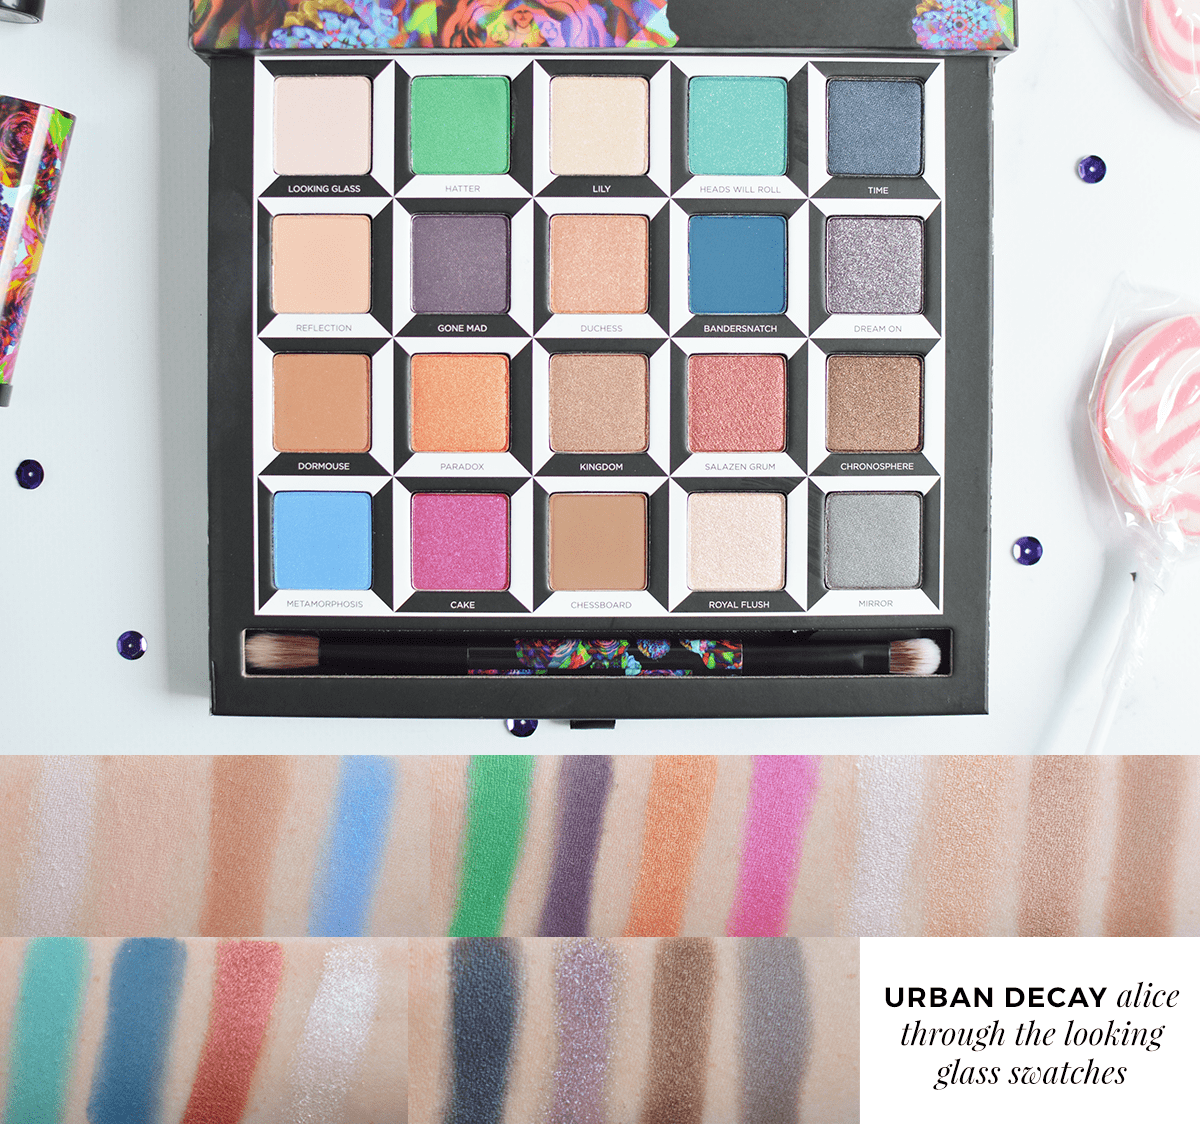 Urban Decay Alice Through The Looking Glass eyeshadow palette swatches | oliveandivyblog.com